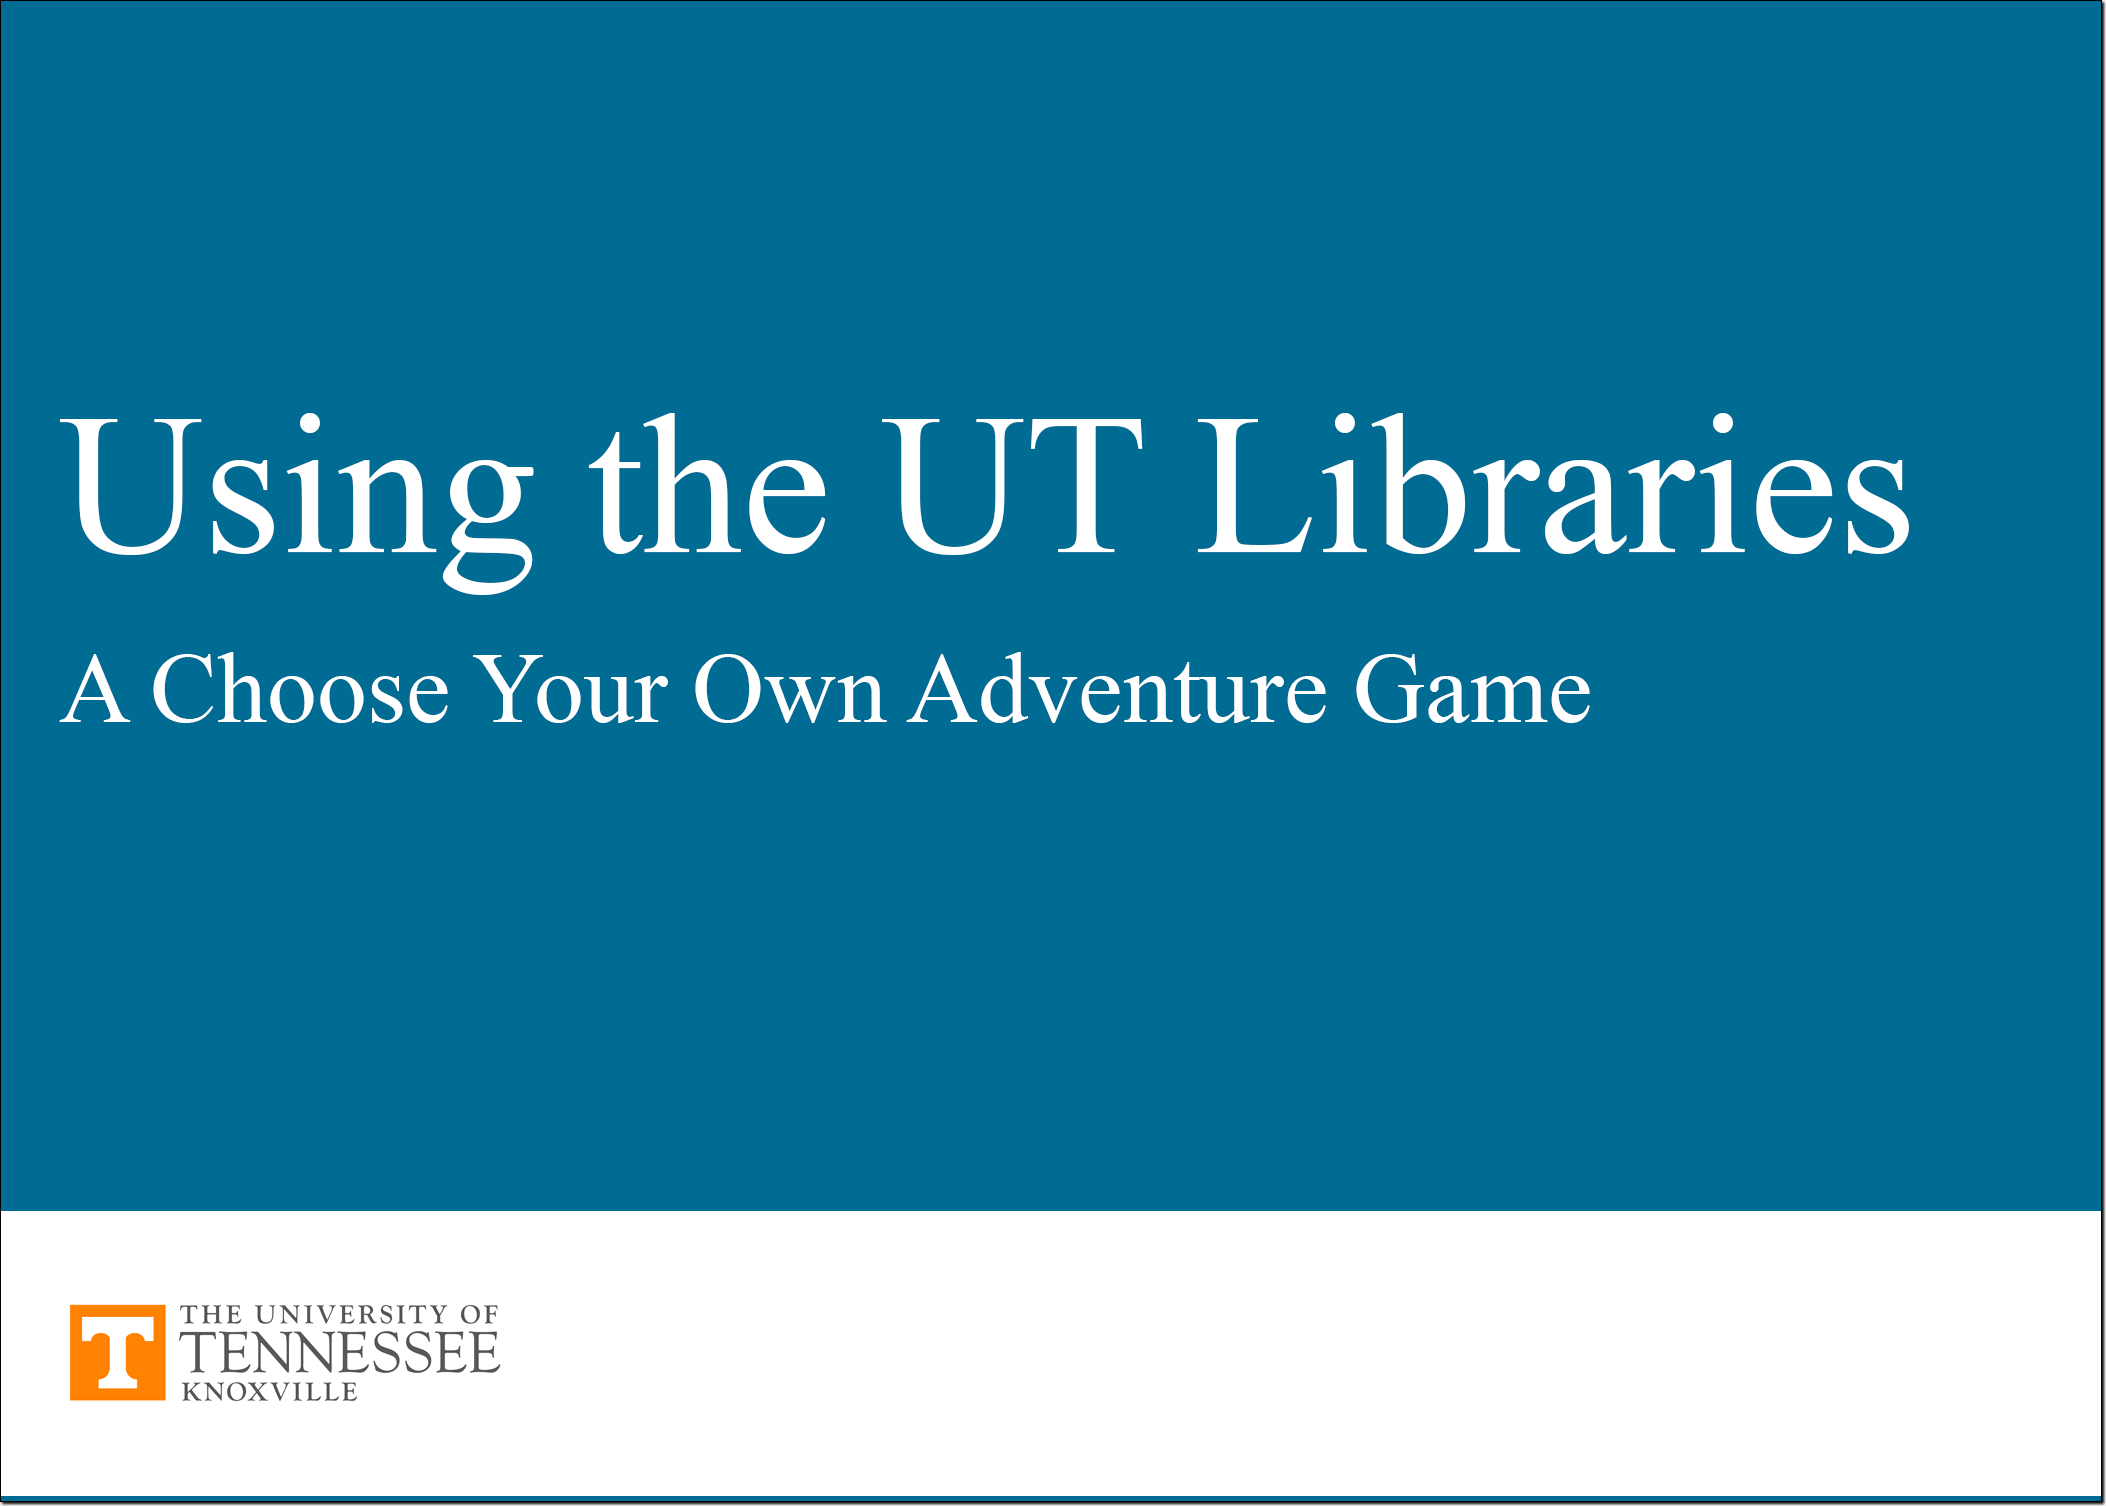 Using the UT Libraries: A Choose Your Own Adventure Game.